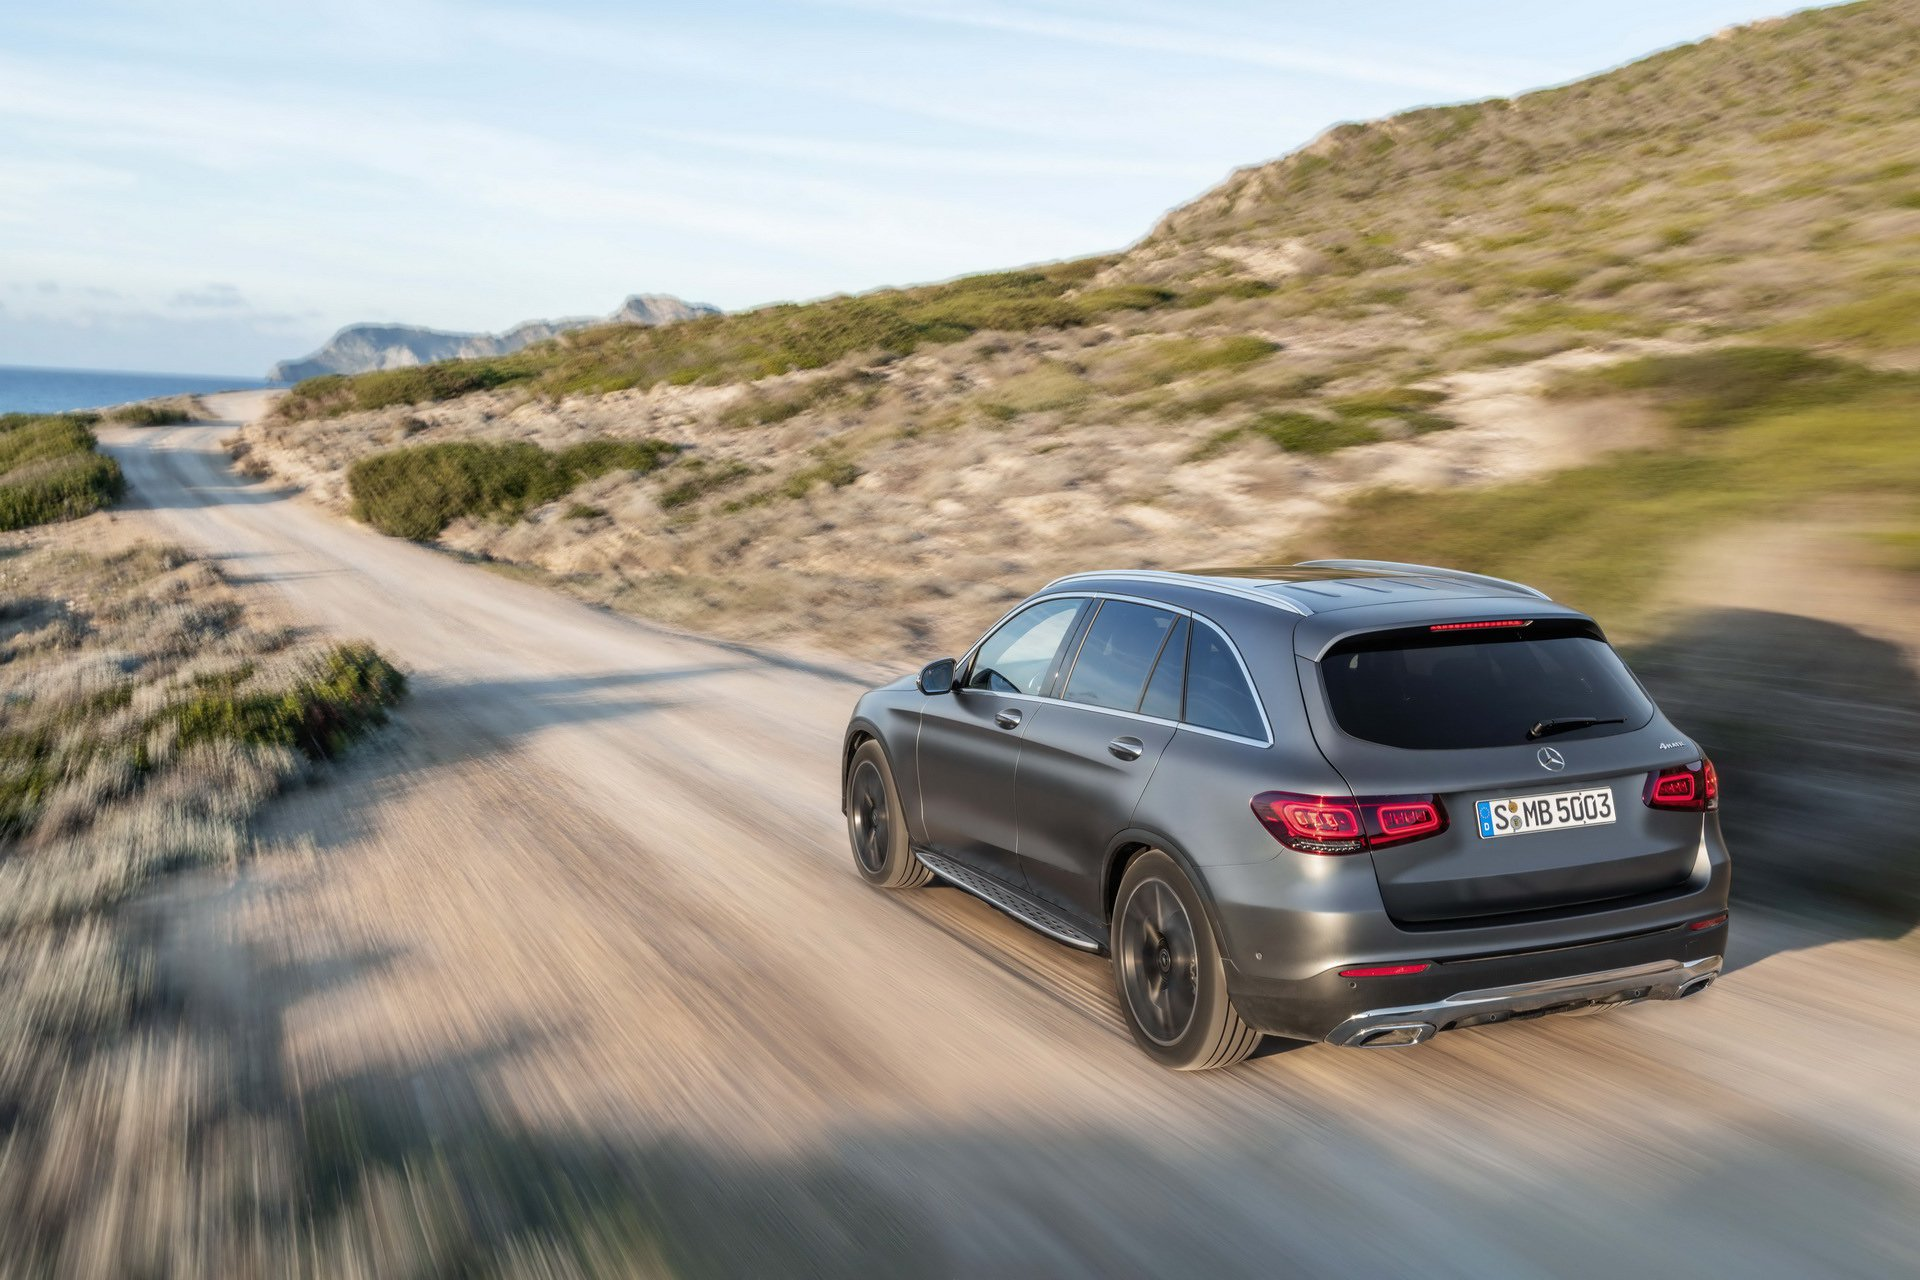 2020 Mercedes GLC-Class Reveals Design Changes and New 2-Liter Engines - autoevolution